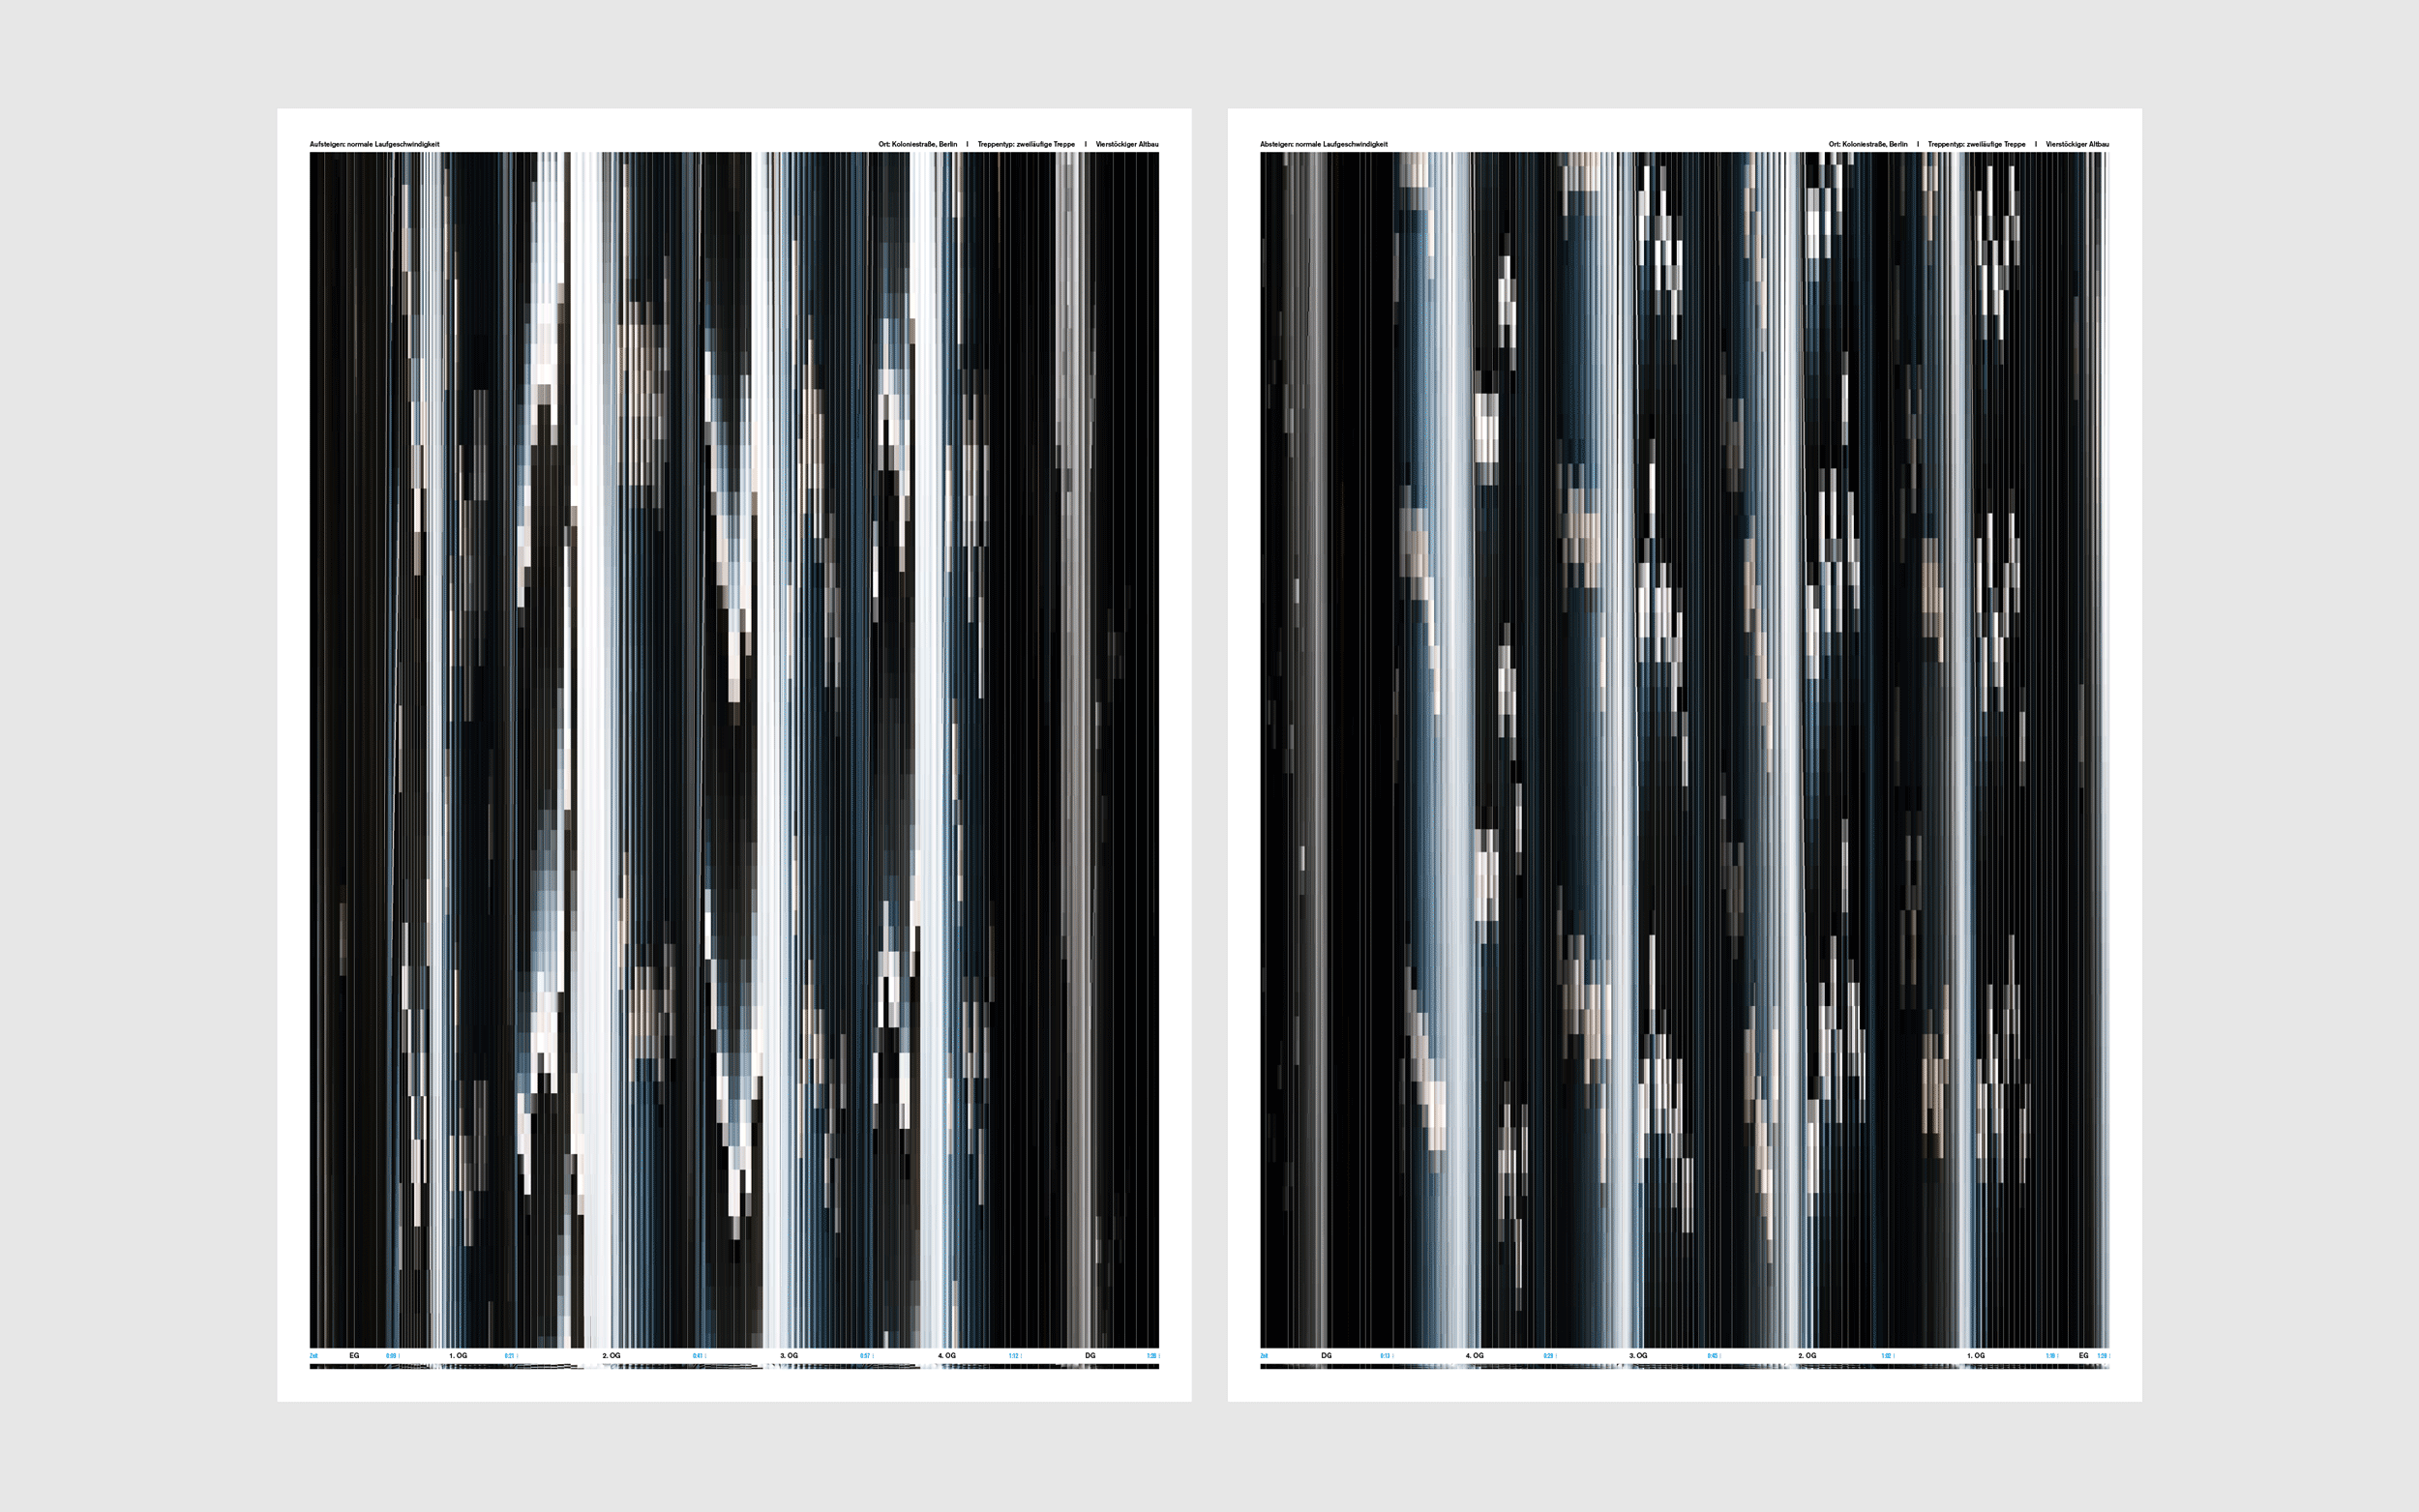 Documentation of Young Sam Kim's UdK Bachelor work: Staircase / poster series.